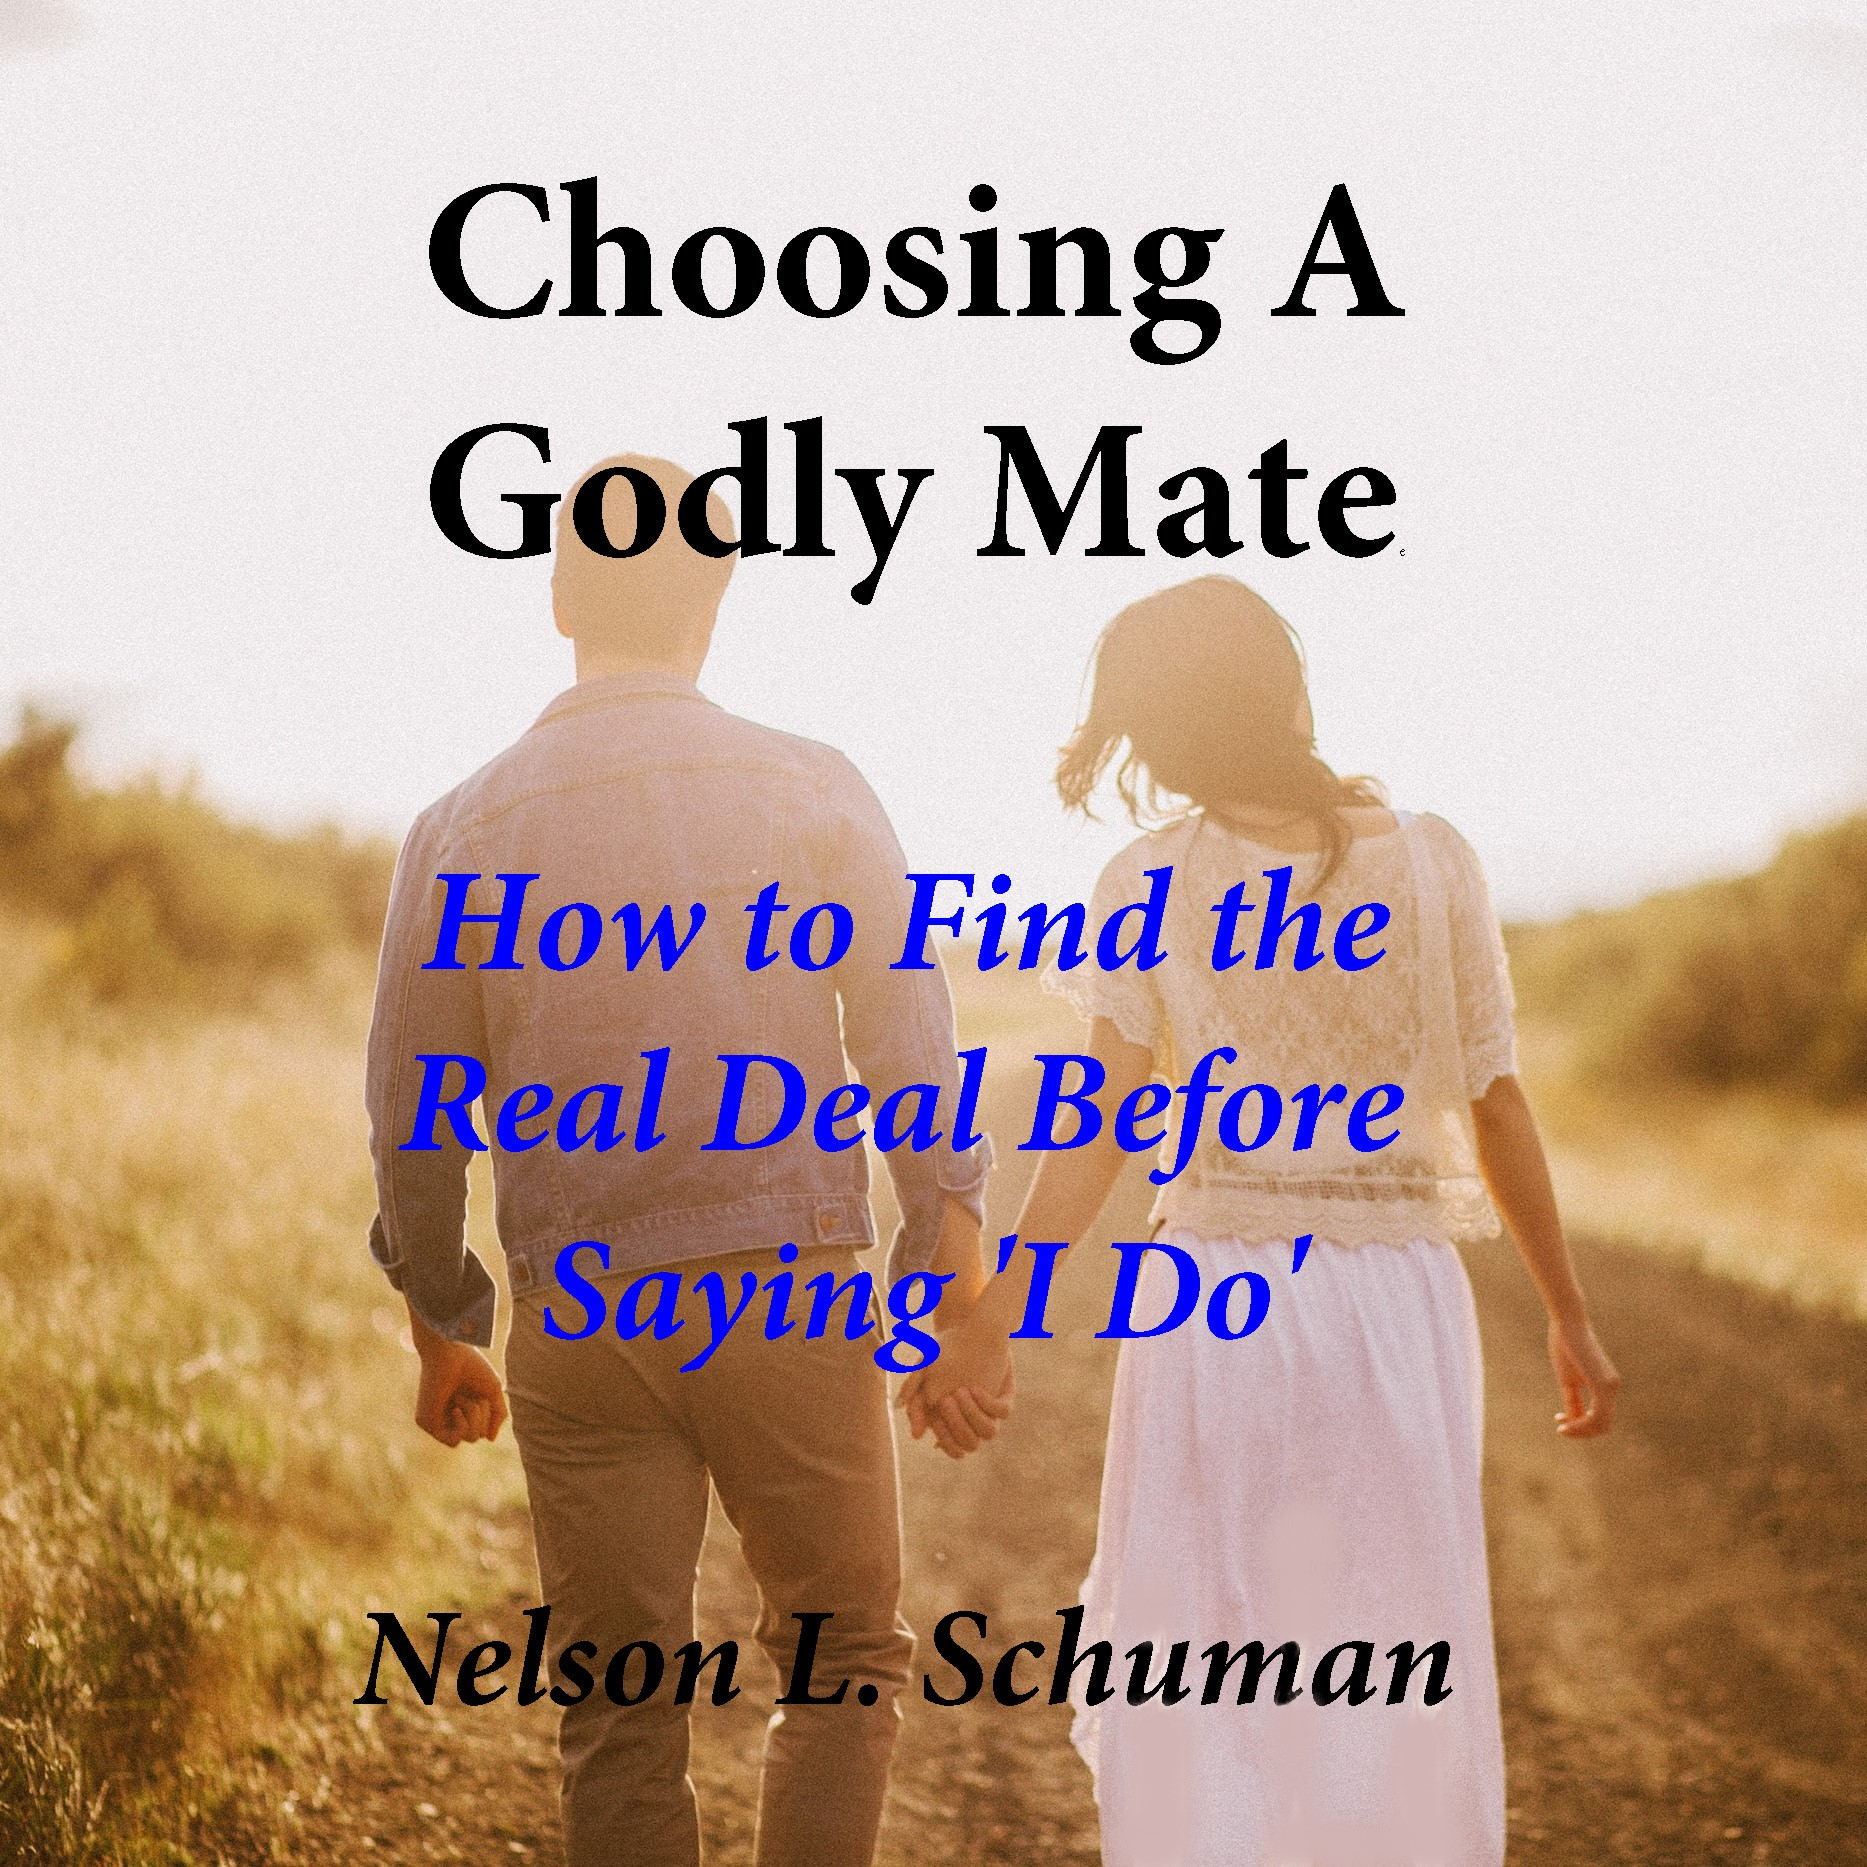 How to find the real deal and marry a godly mate